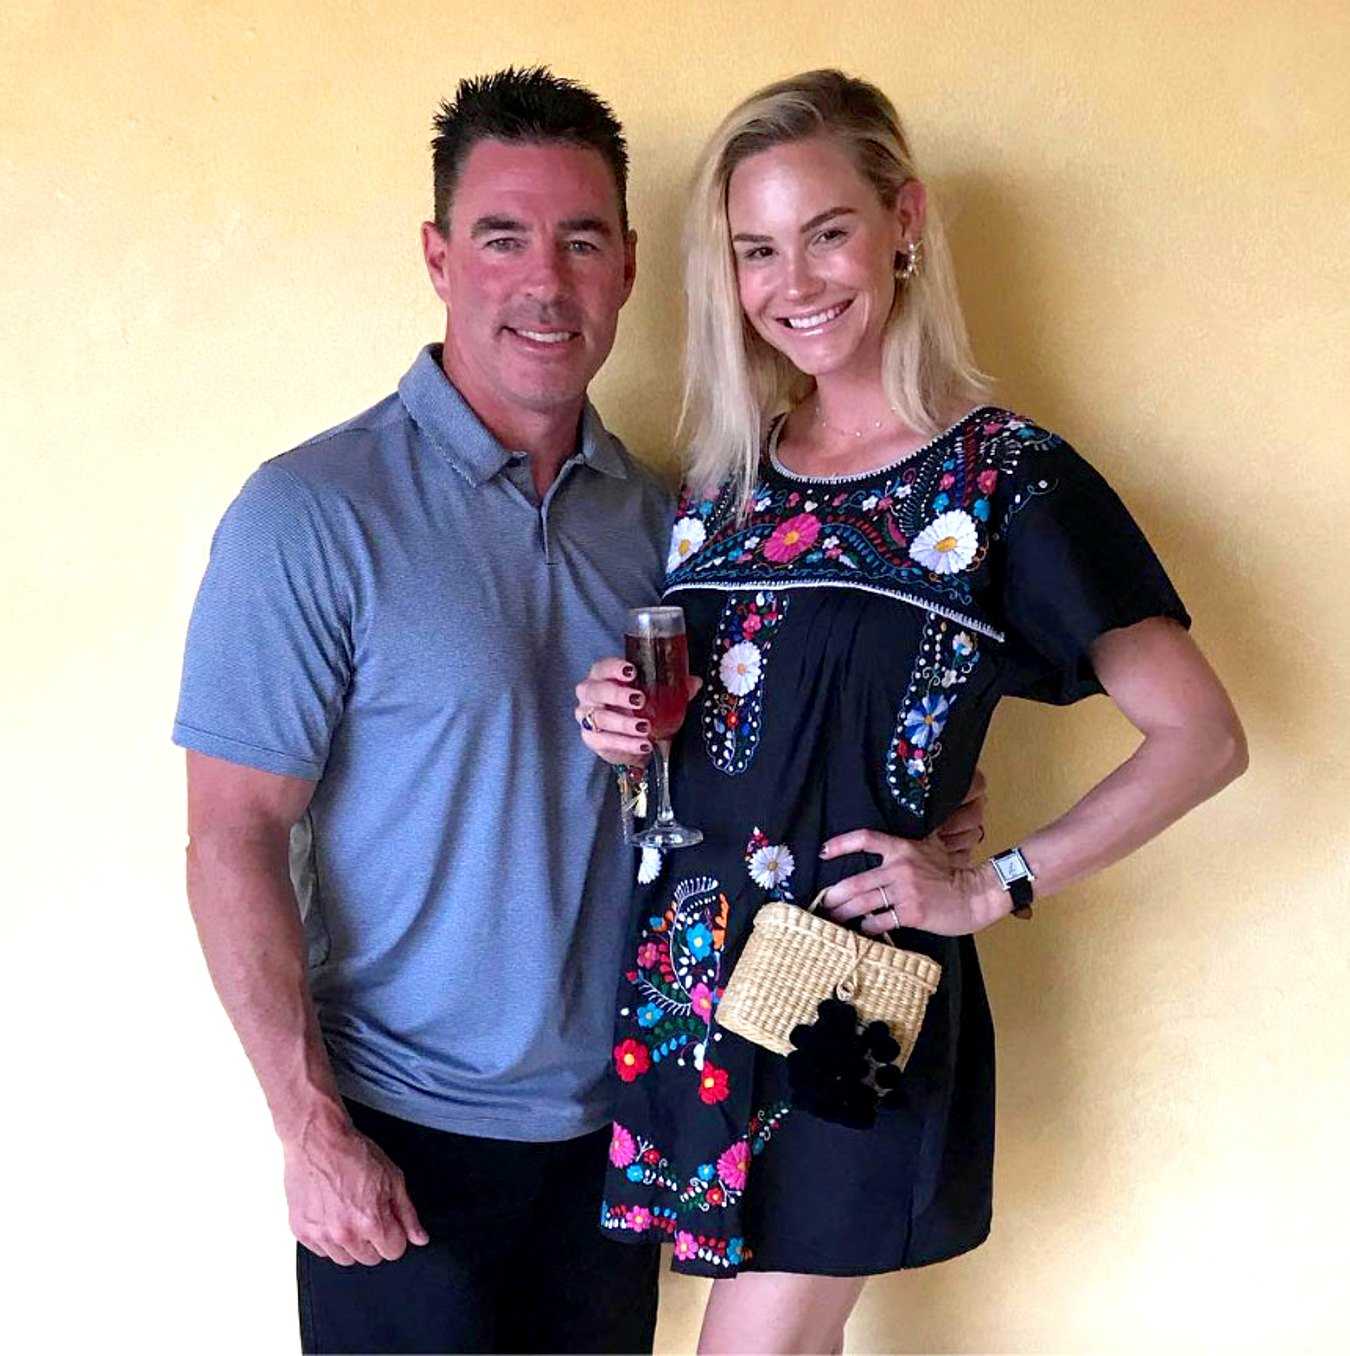 PHOTOS: RHOC's Jim Edmonds Moves Into New Home, Plus He Explains Why He Called the Cops on Meghan as Police Release a Statement